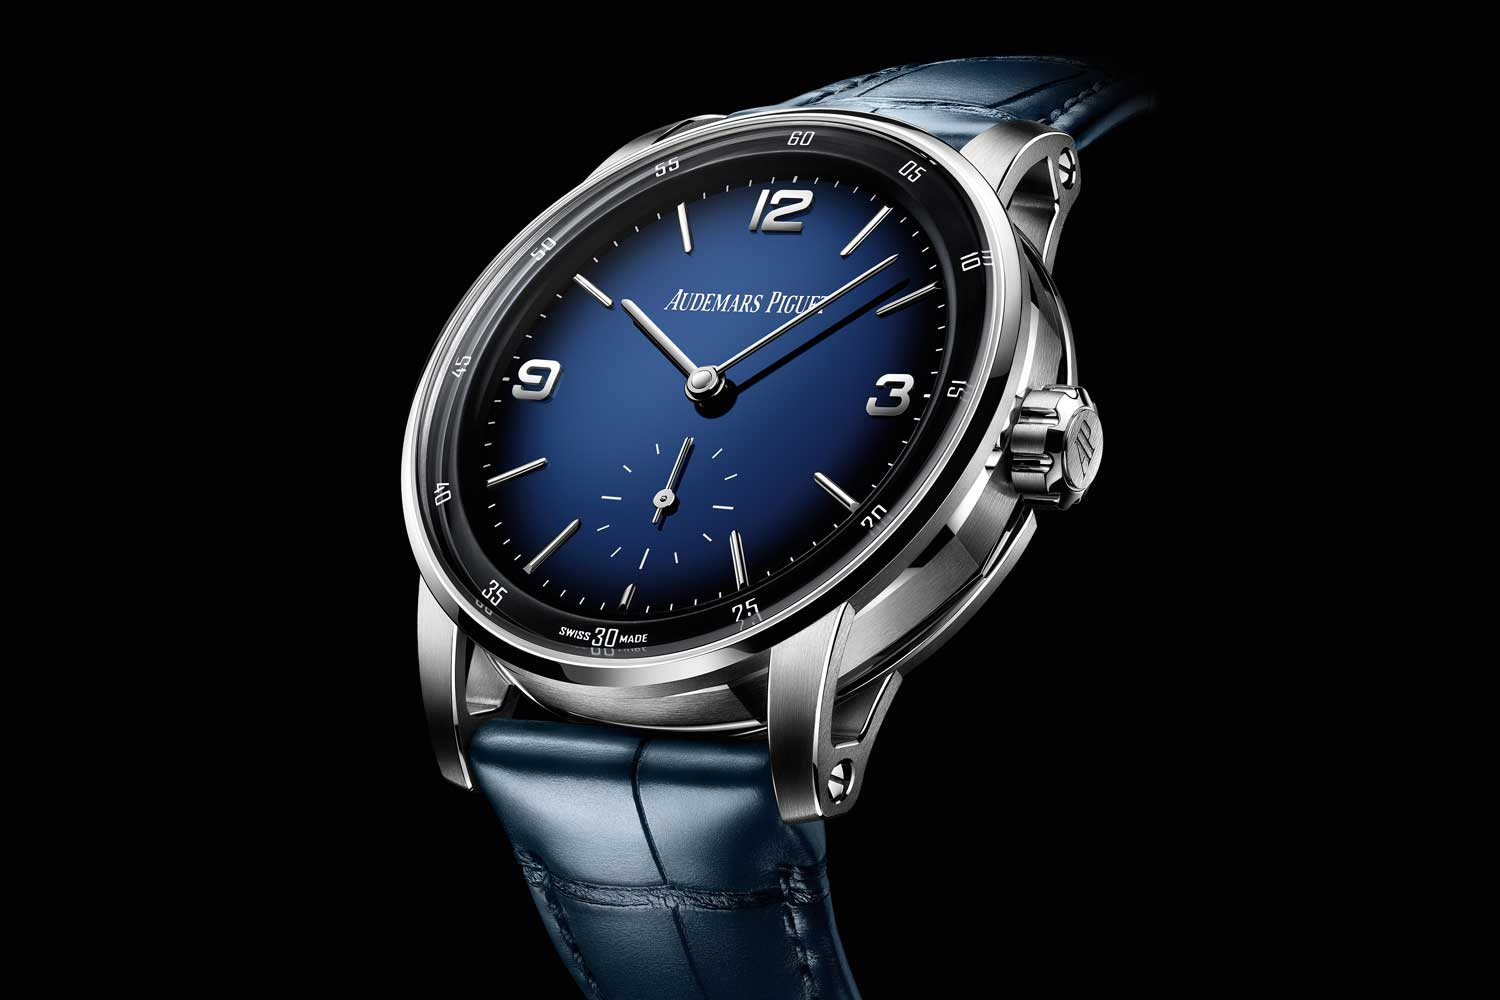 The Code 11.59 by Audemars Piguet Minute Repeater Supersonnerie with the blue fumé enamel dial